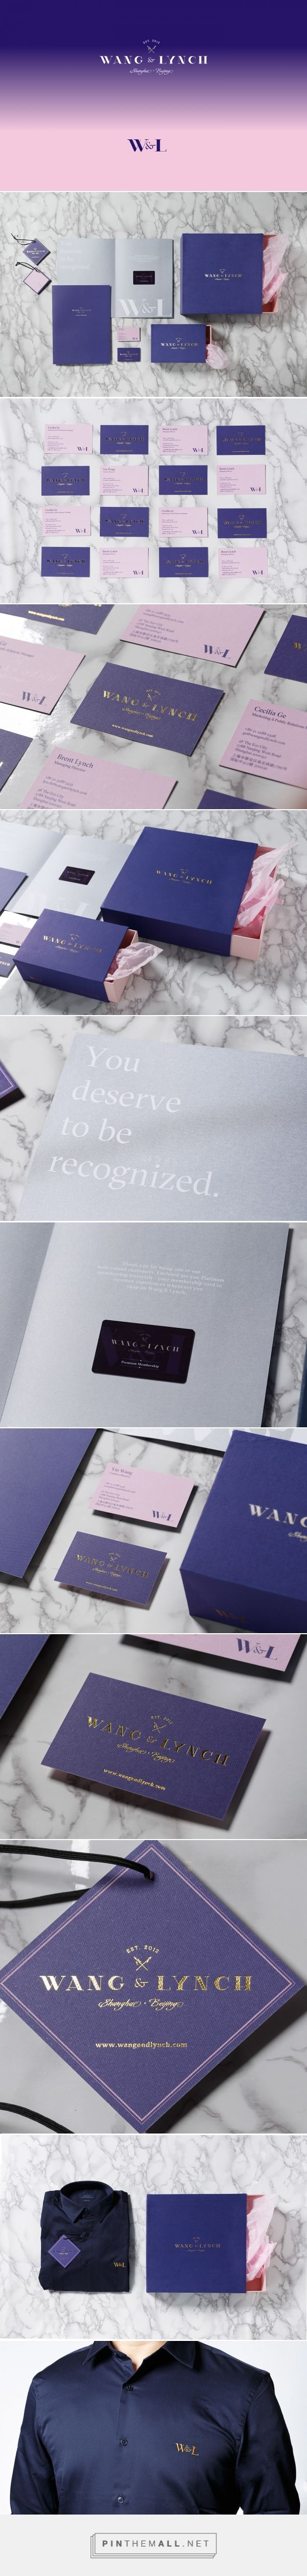 Wang & Lynch Branding and Packaging by Frames | Fivestar Branding Agency – Design and Branding Agency & Curated Inspiration Gallery